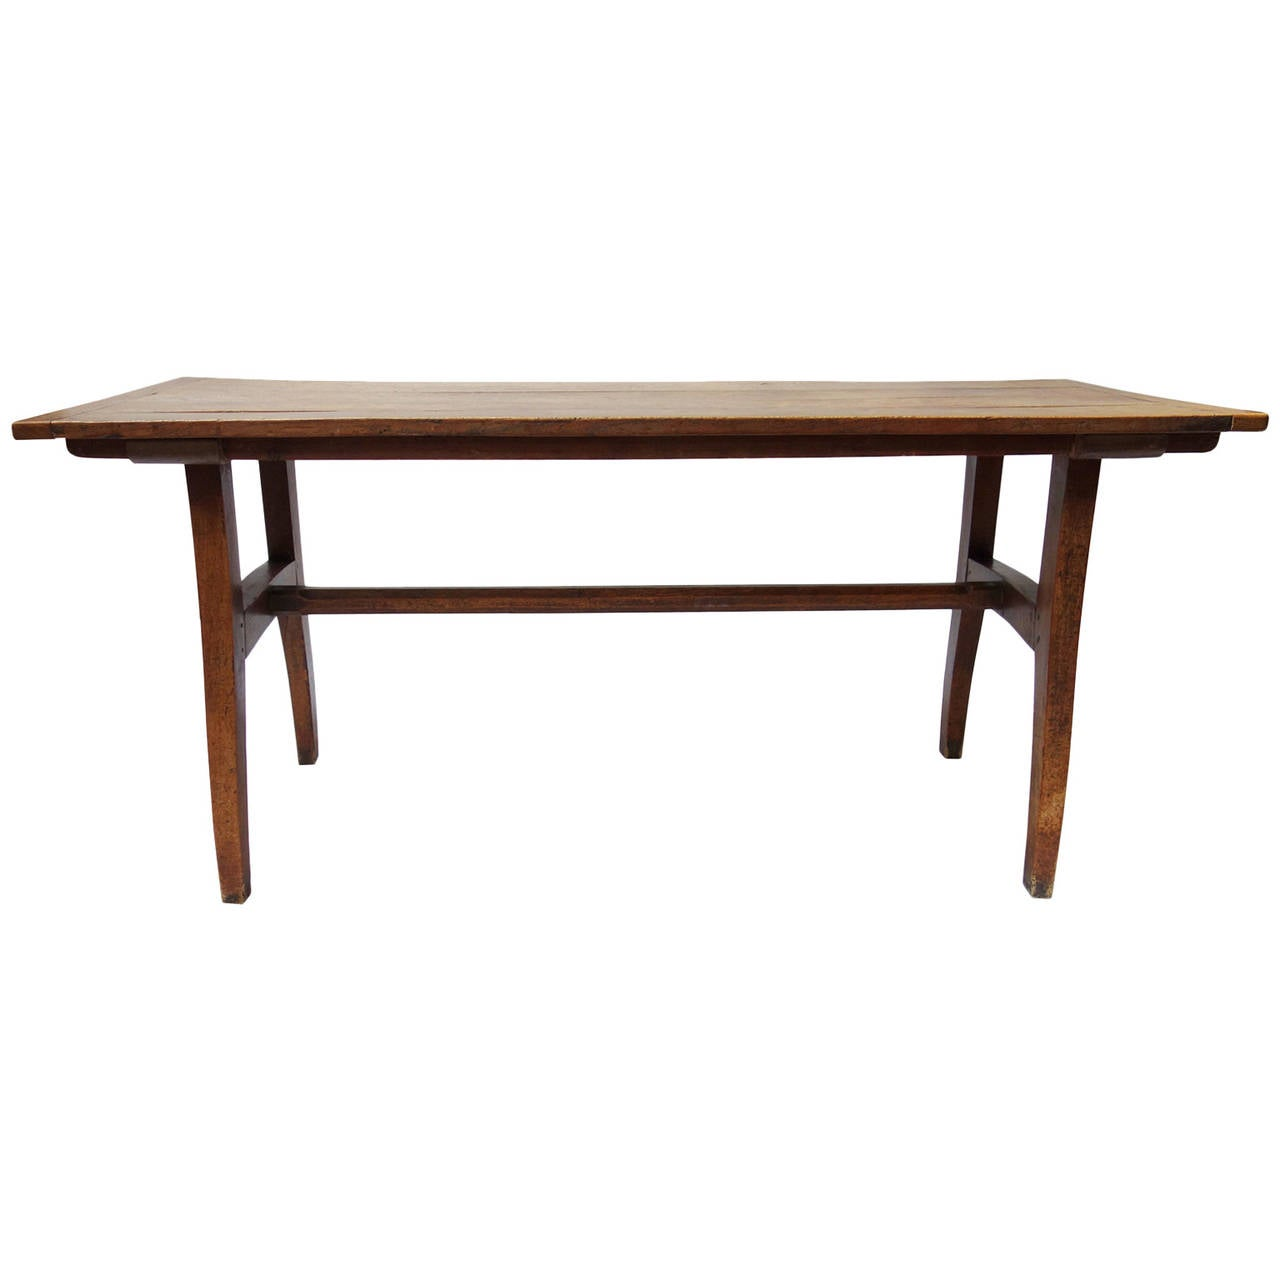 arts and crafts oak dining table at 1stdibs arts and crafts dining table 21 dining table ideas